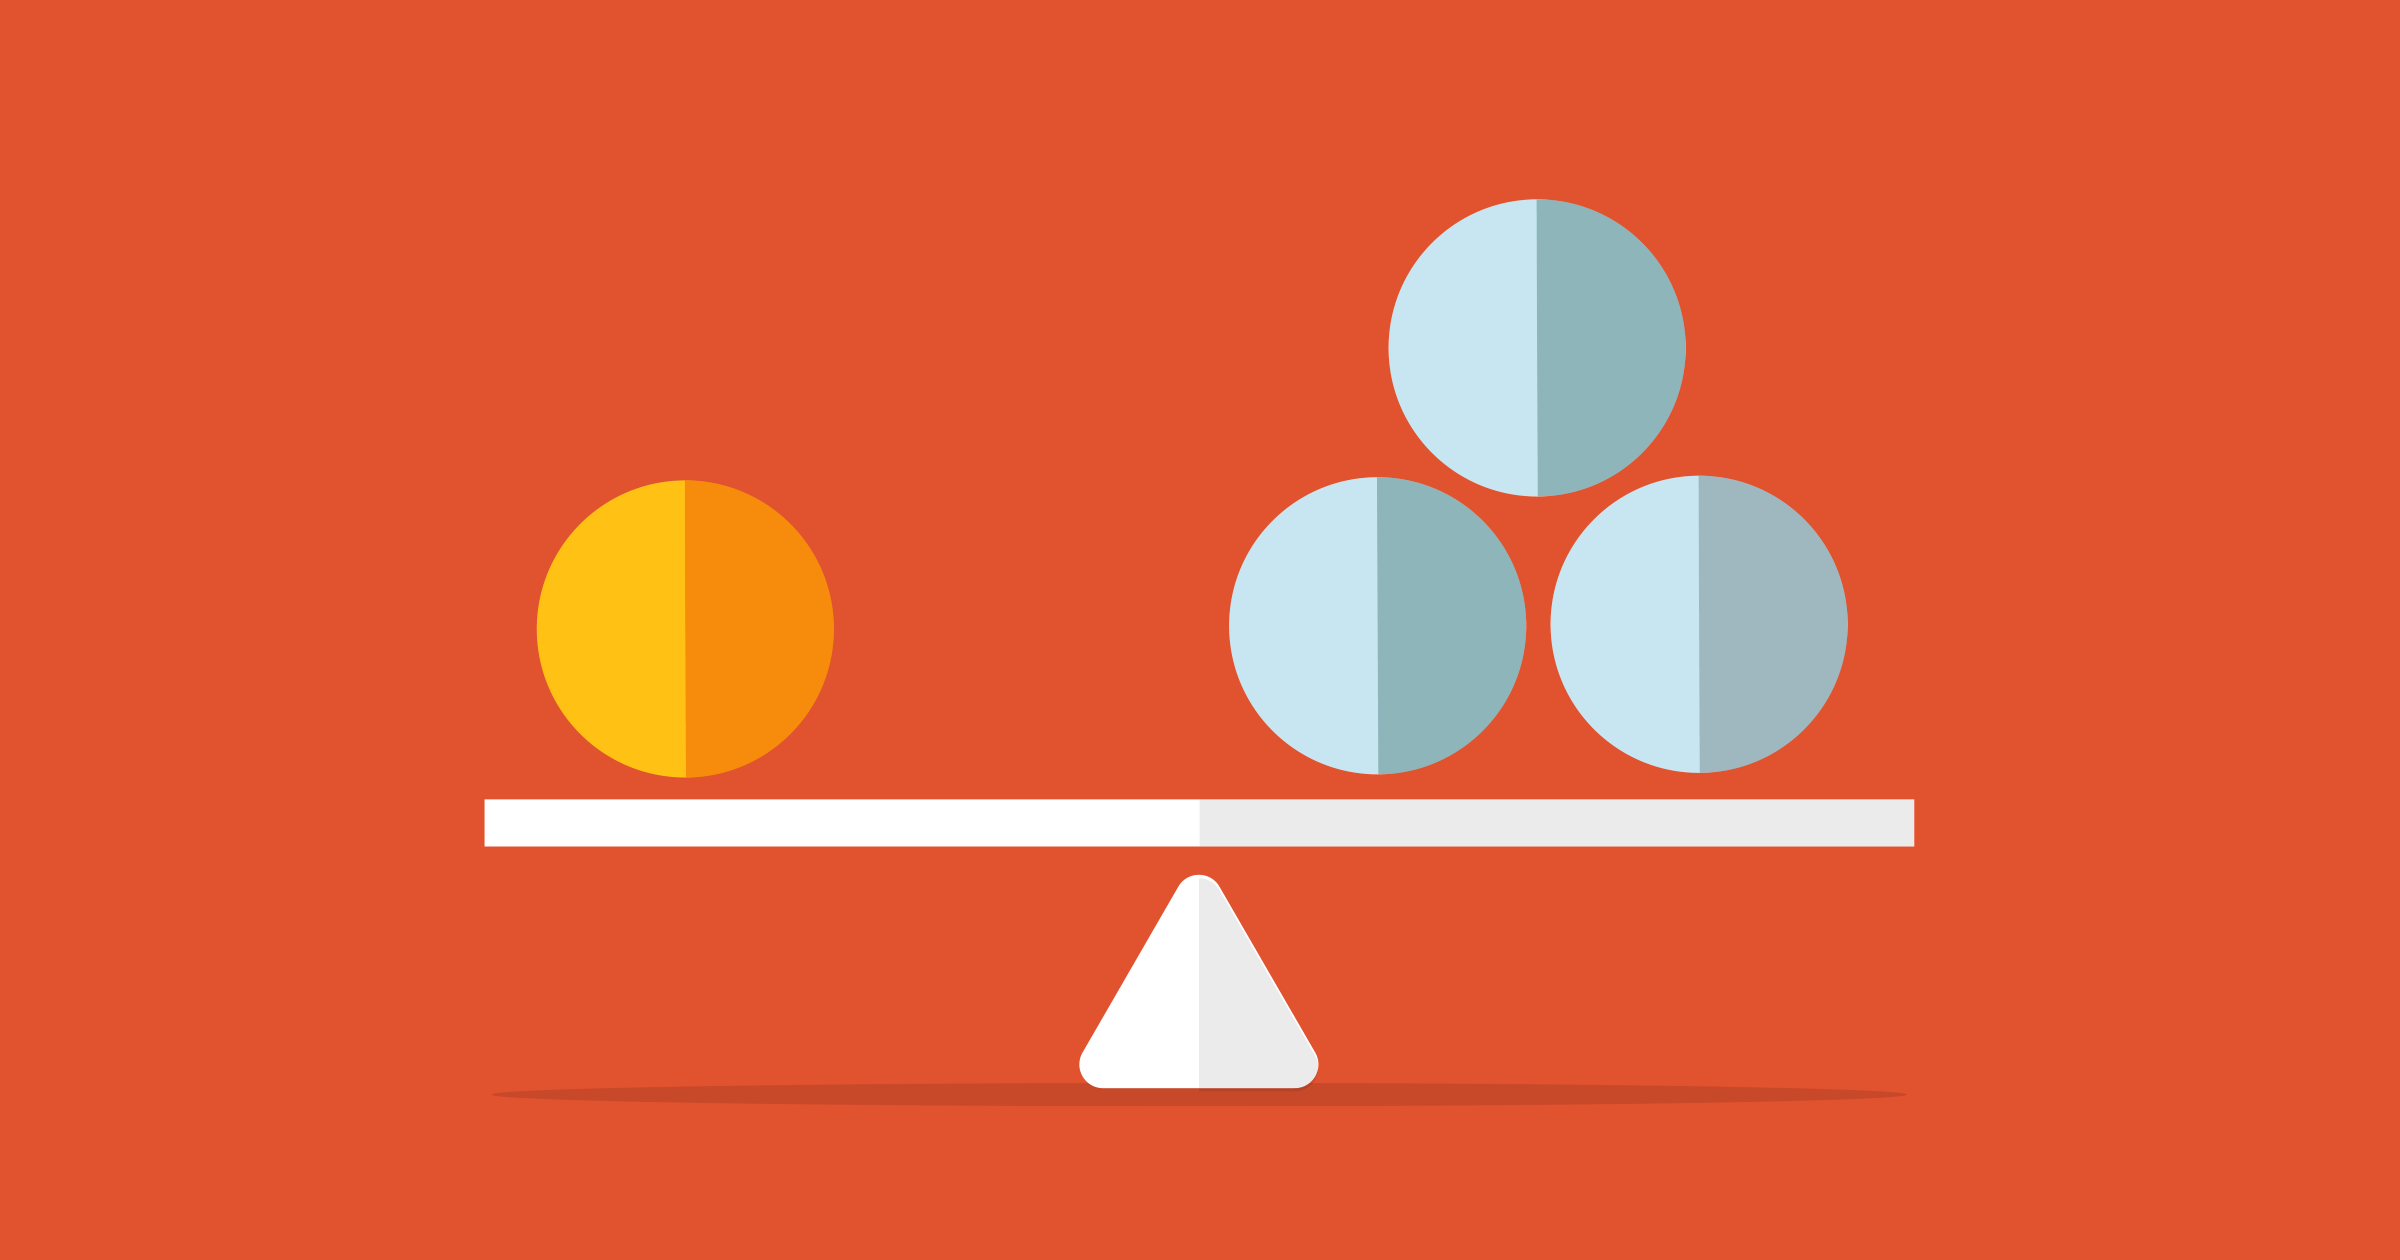 A balanced seesaw with one orange sphere on the left, and three blue spheres on the right, against a red background.